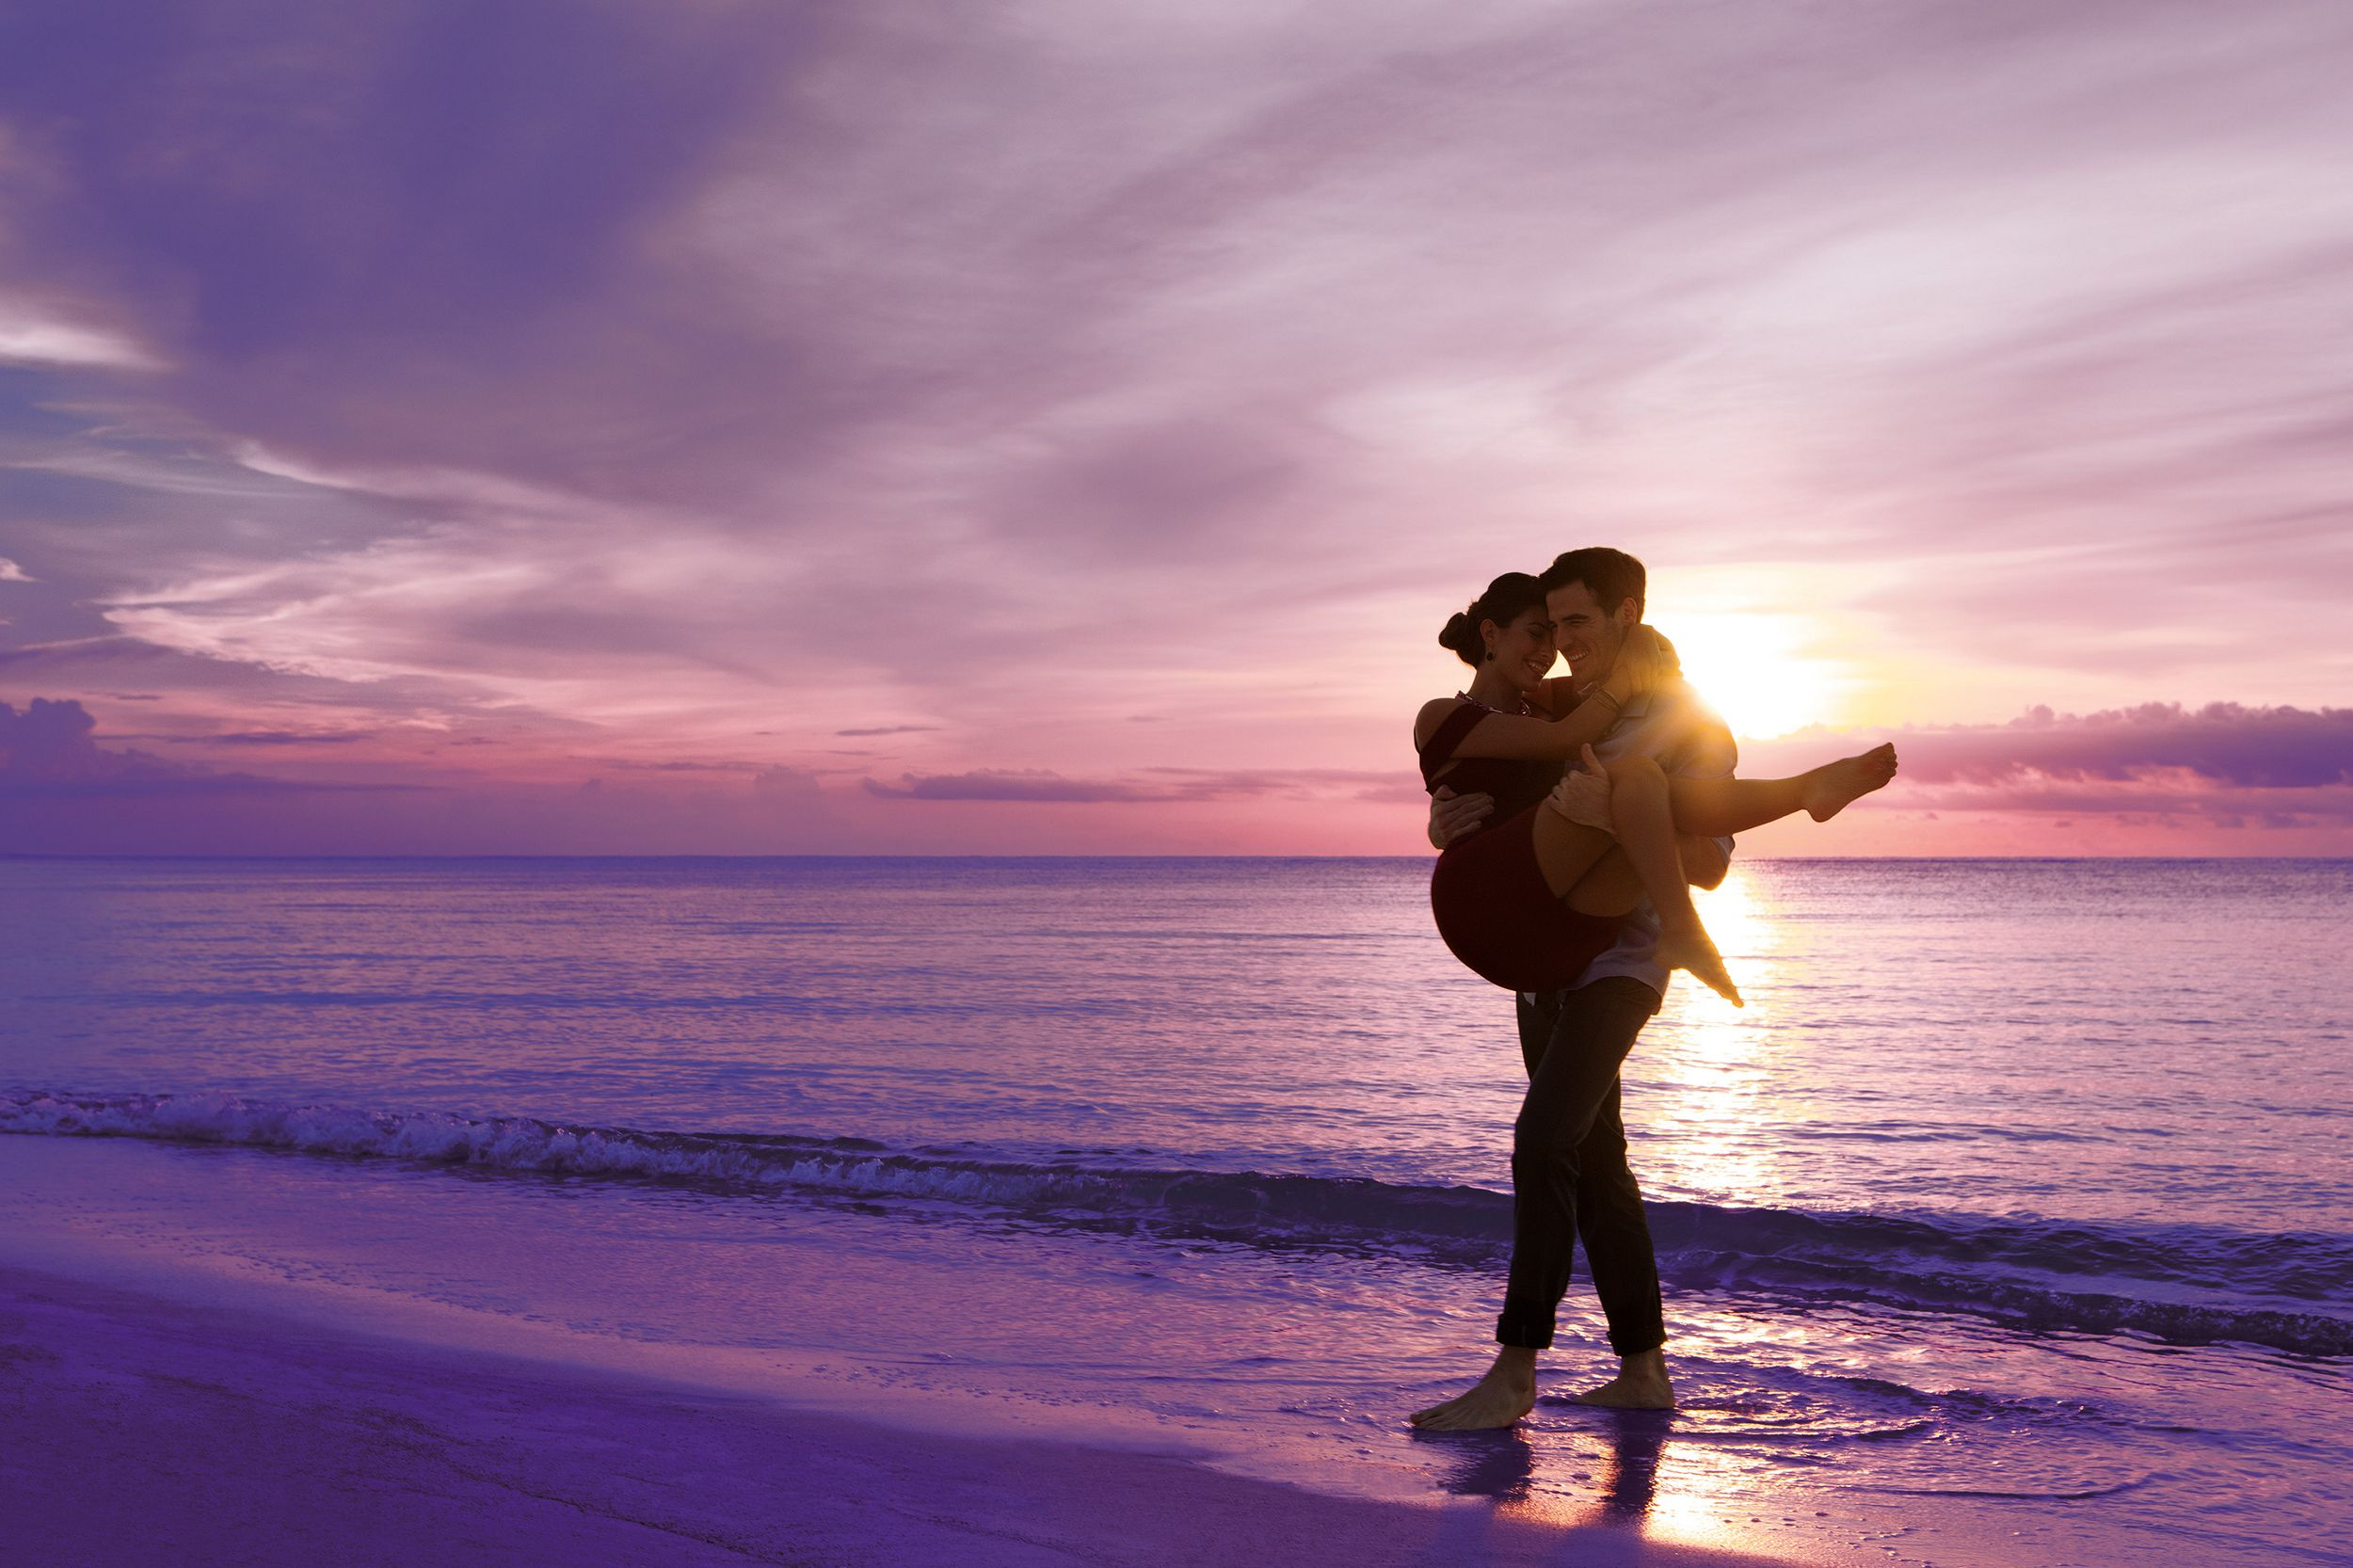 couple by the ocean at sunset